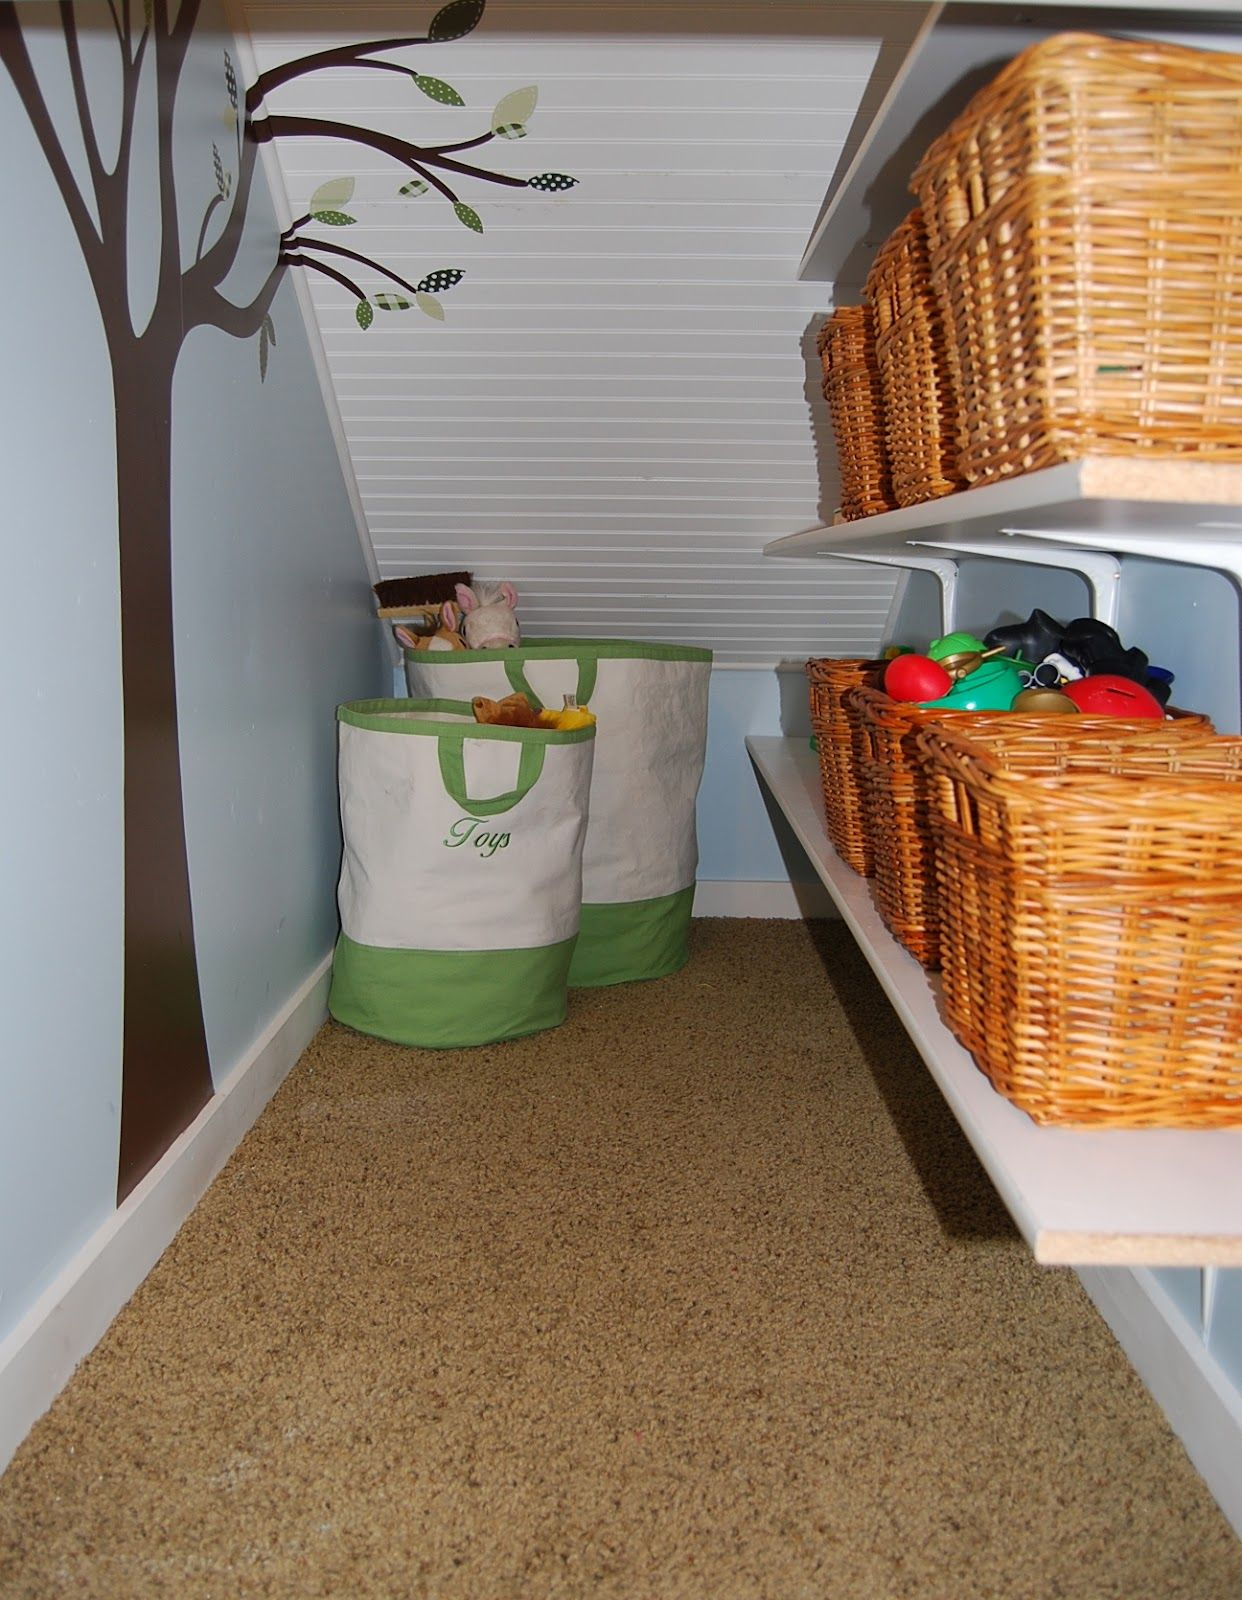 Under Stair Closet Organization Ideas Part - 40: Operation Organization: Organizing Small Spaces : Utilize Every Nook U0026  Cranny Turn A Small Closet Under The Stairs Into A Play Area